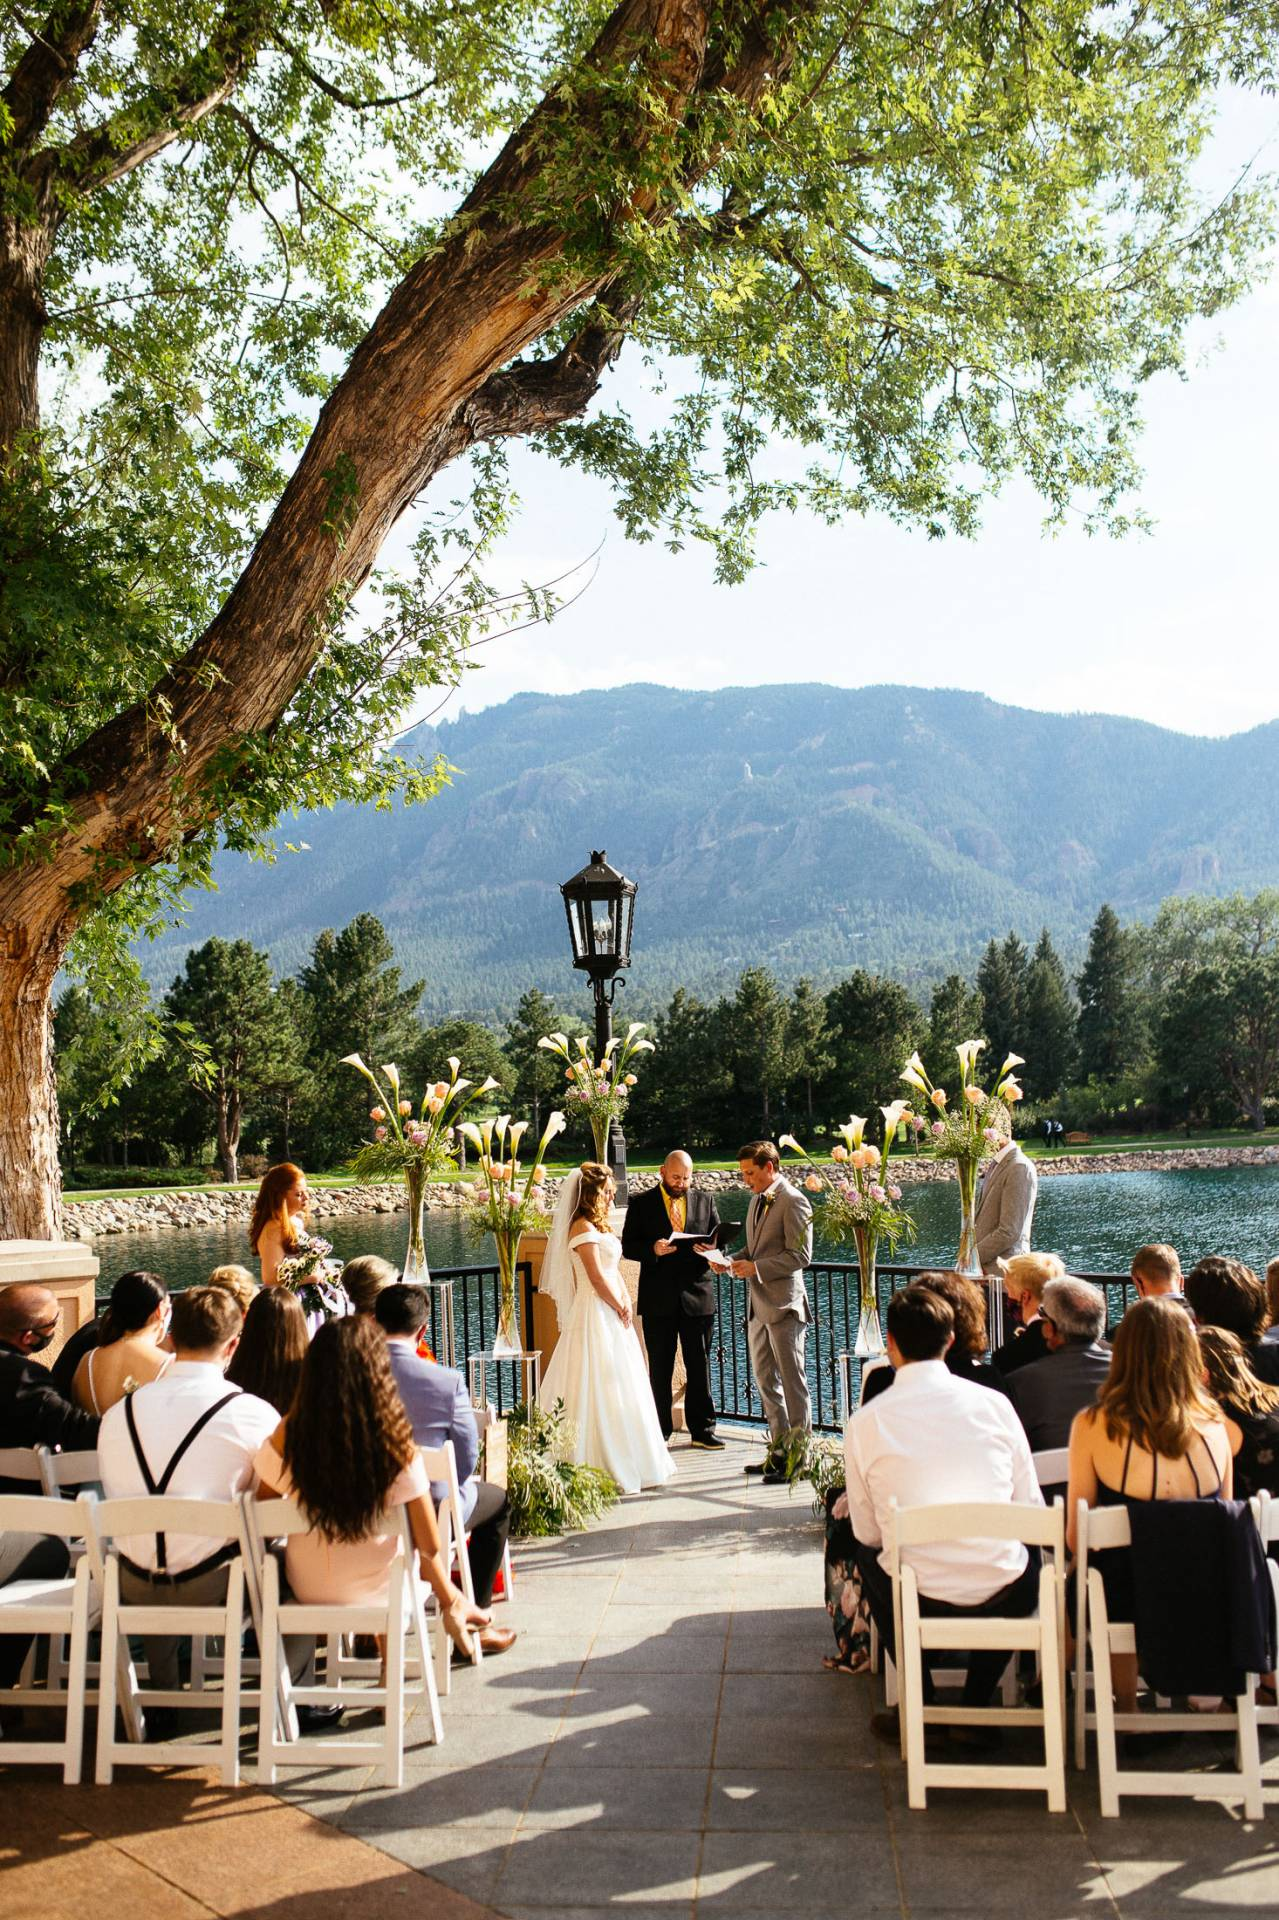 Wedding ceremony underneat oak tree with views of Cheyenne Mountain at The Broadmoor.